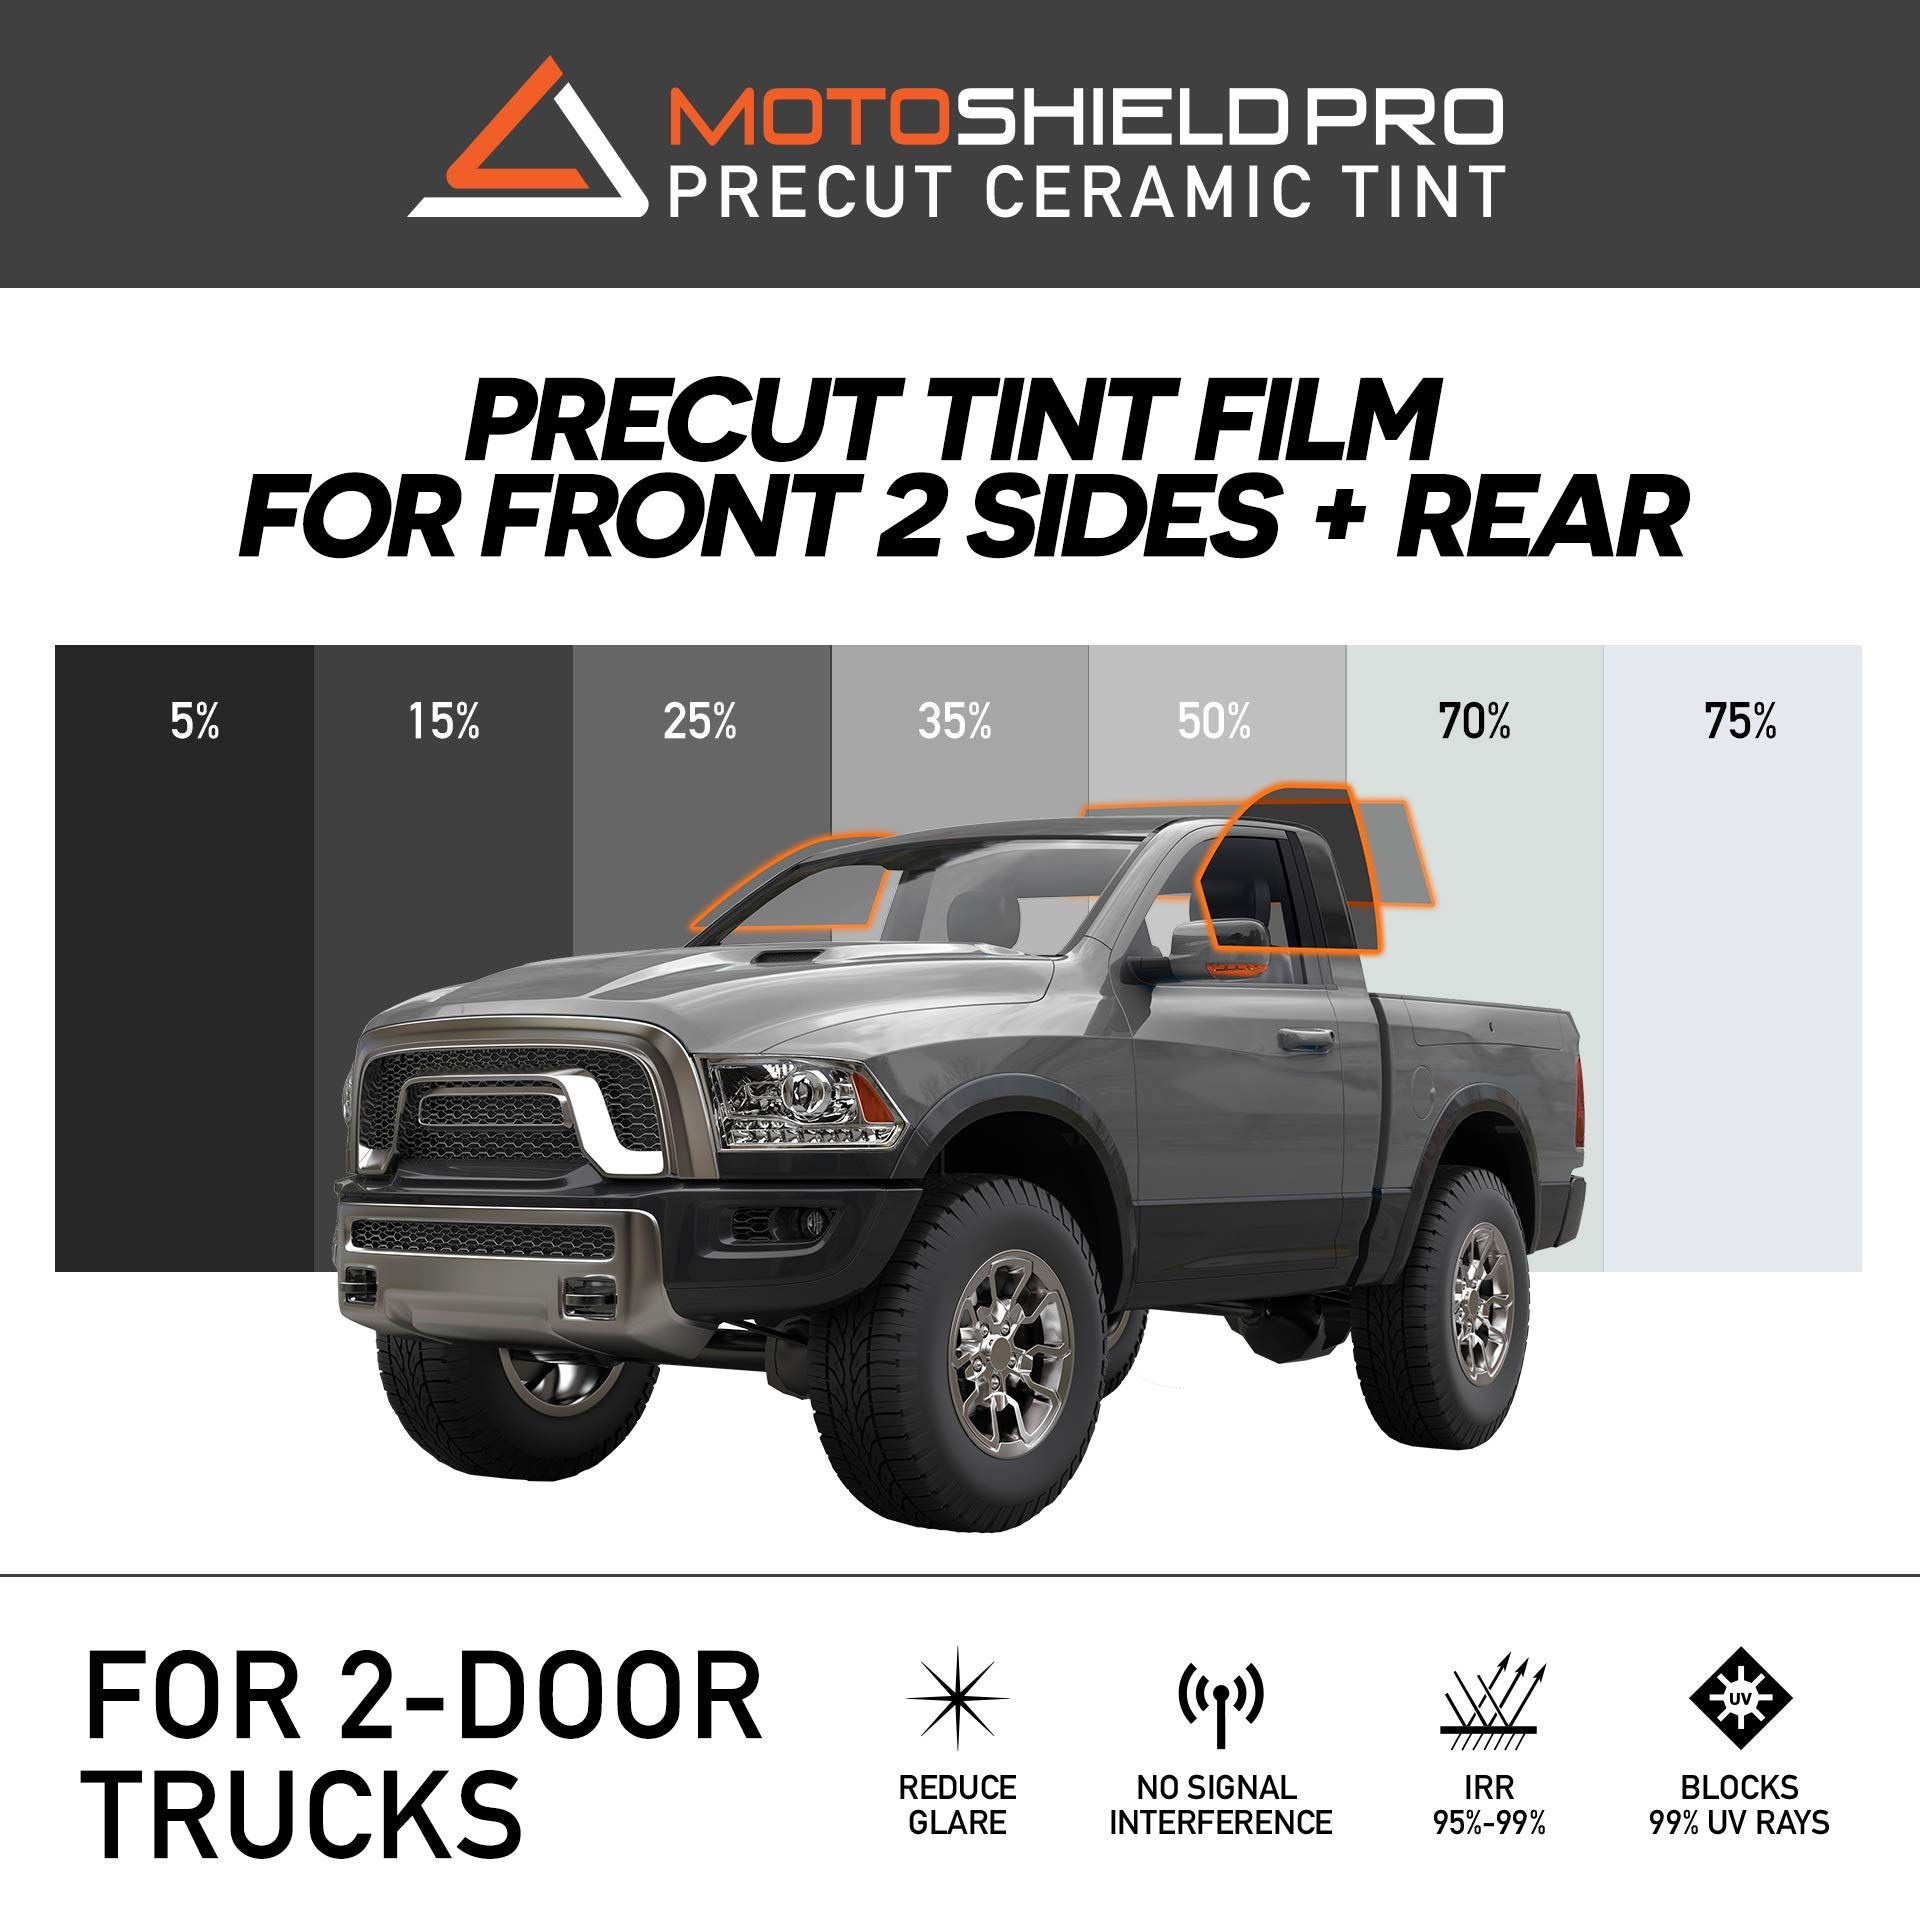 MotoShield Pro Precut Ceramic Tint Film [Blocks Up to 99% of UV/IRR Rays] Window Tint for 2 Door Trucks - 2 Front Side Windows + Rear Only, Any Tint Shade by MotoShield Pro